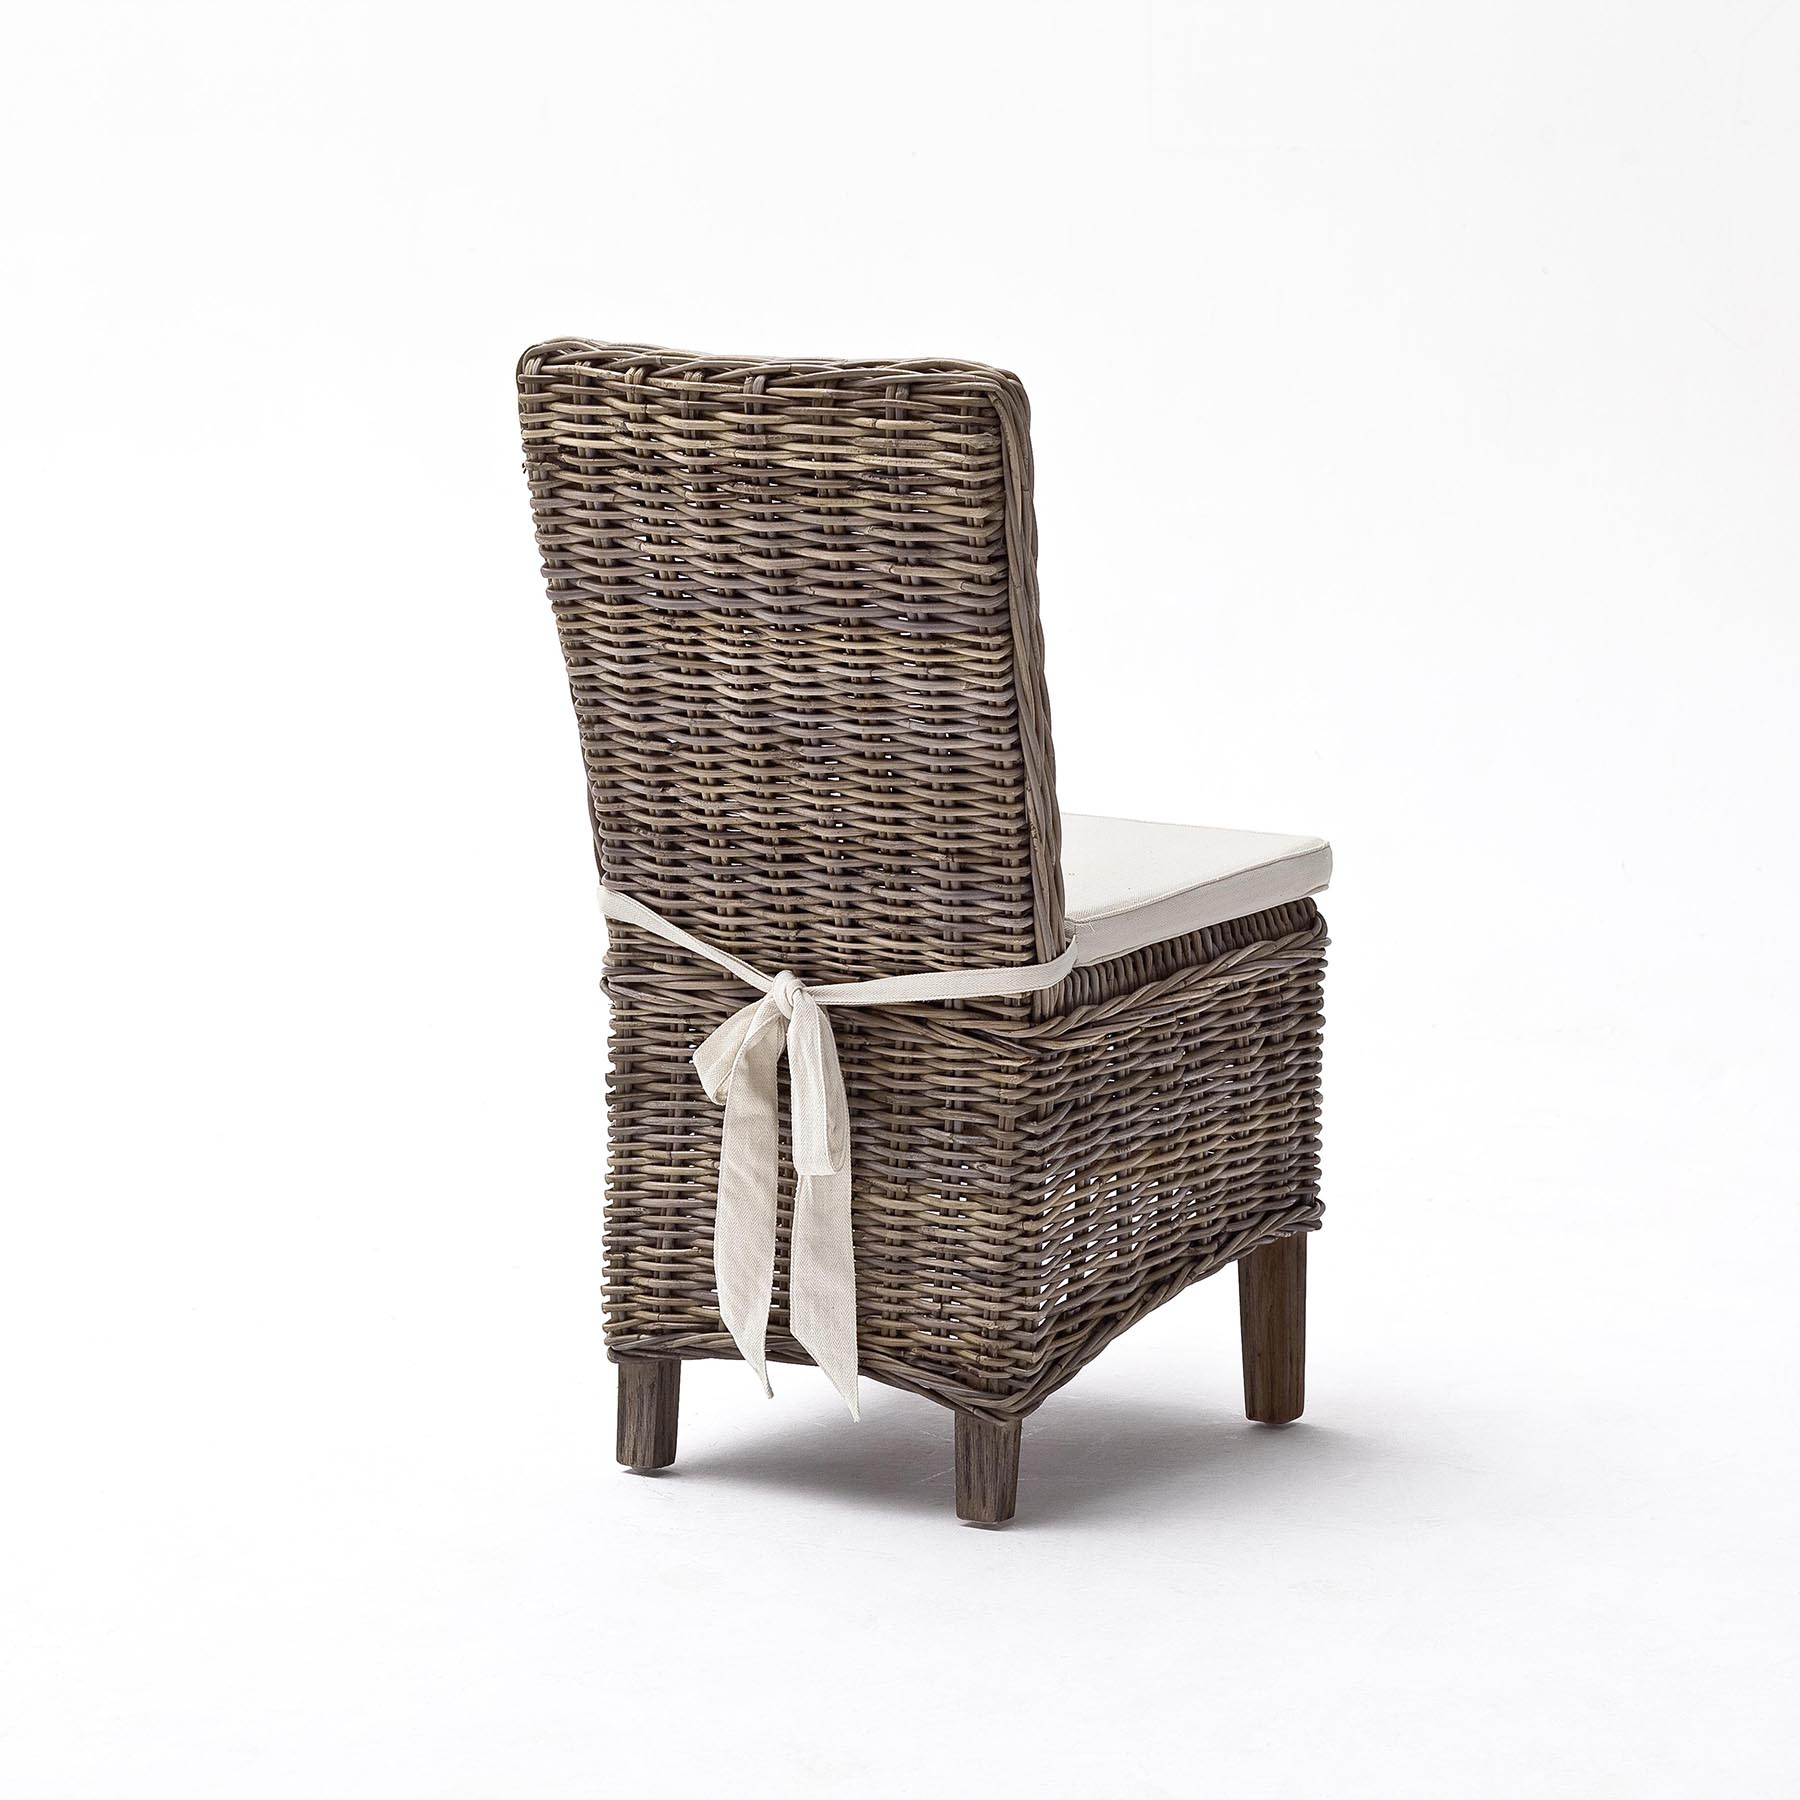 Cheap Wicker Dining Chairs: Wicker Dining Chair, Home Furniture Manufacturer